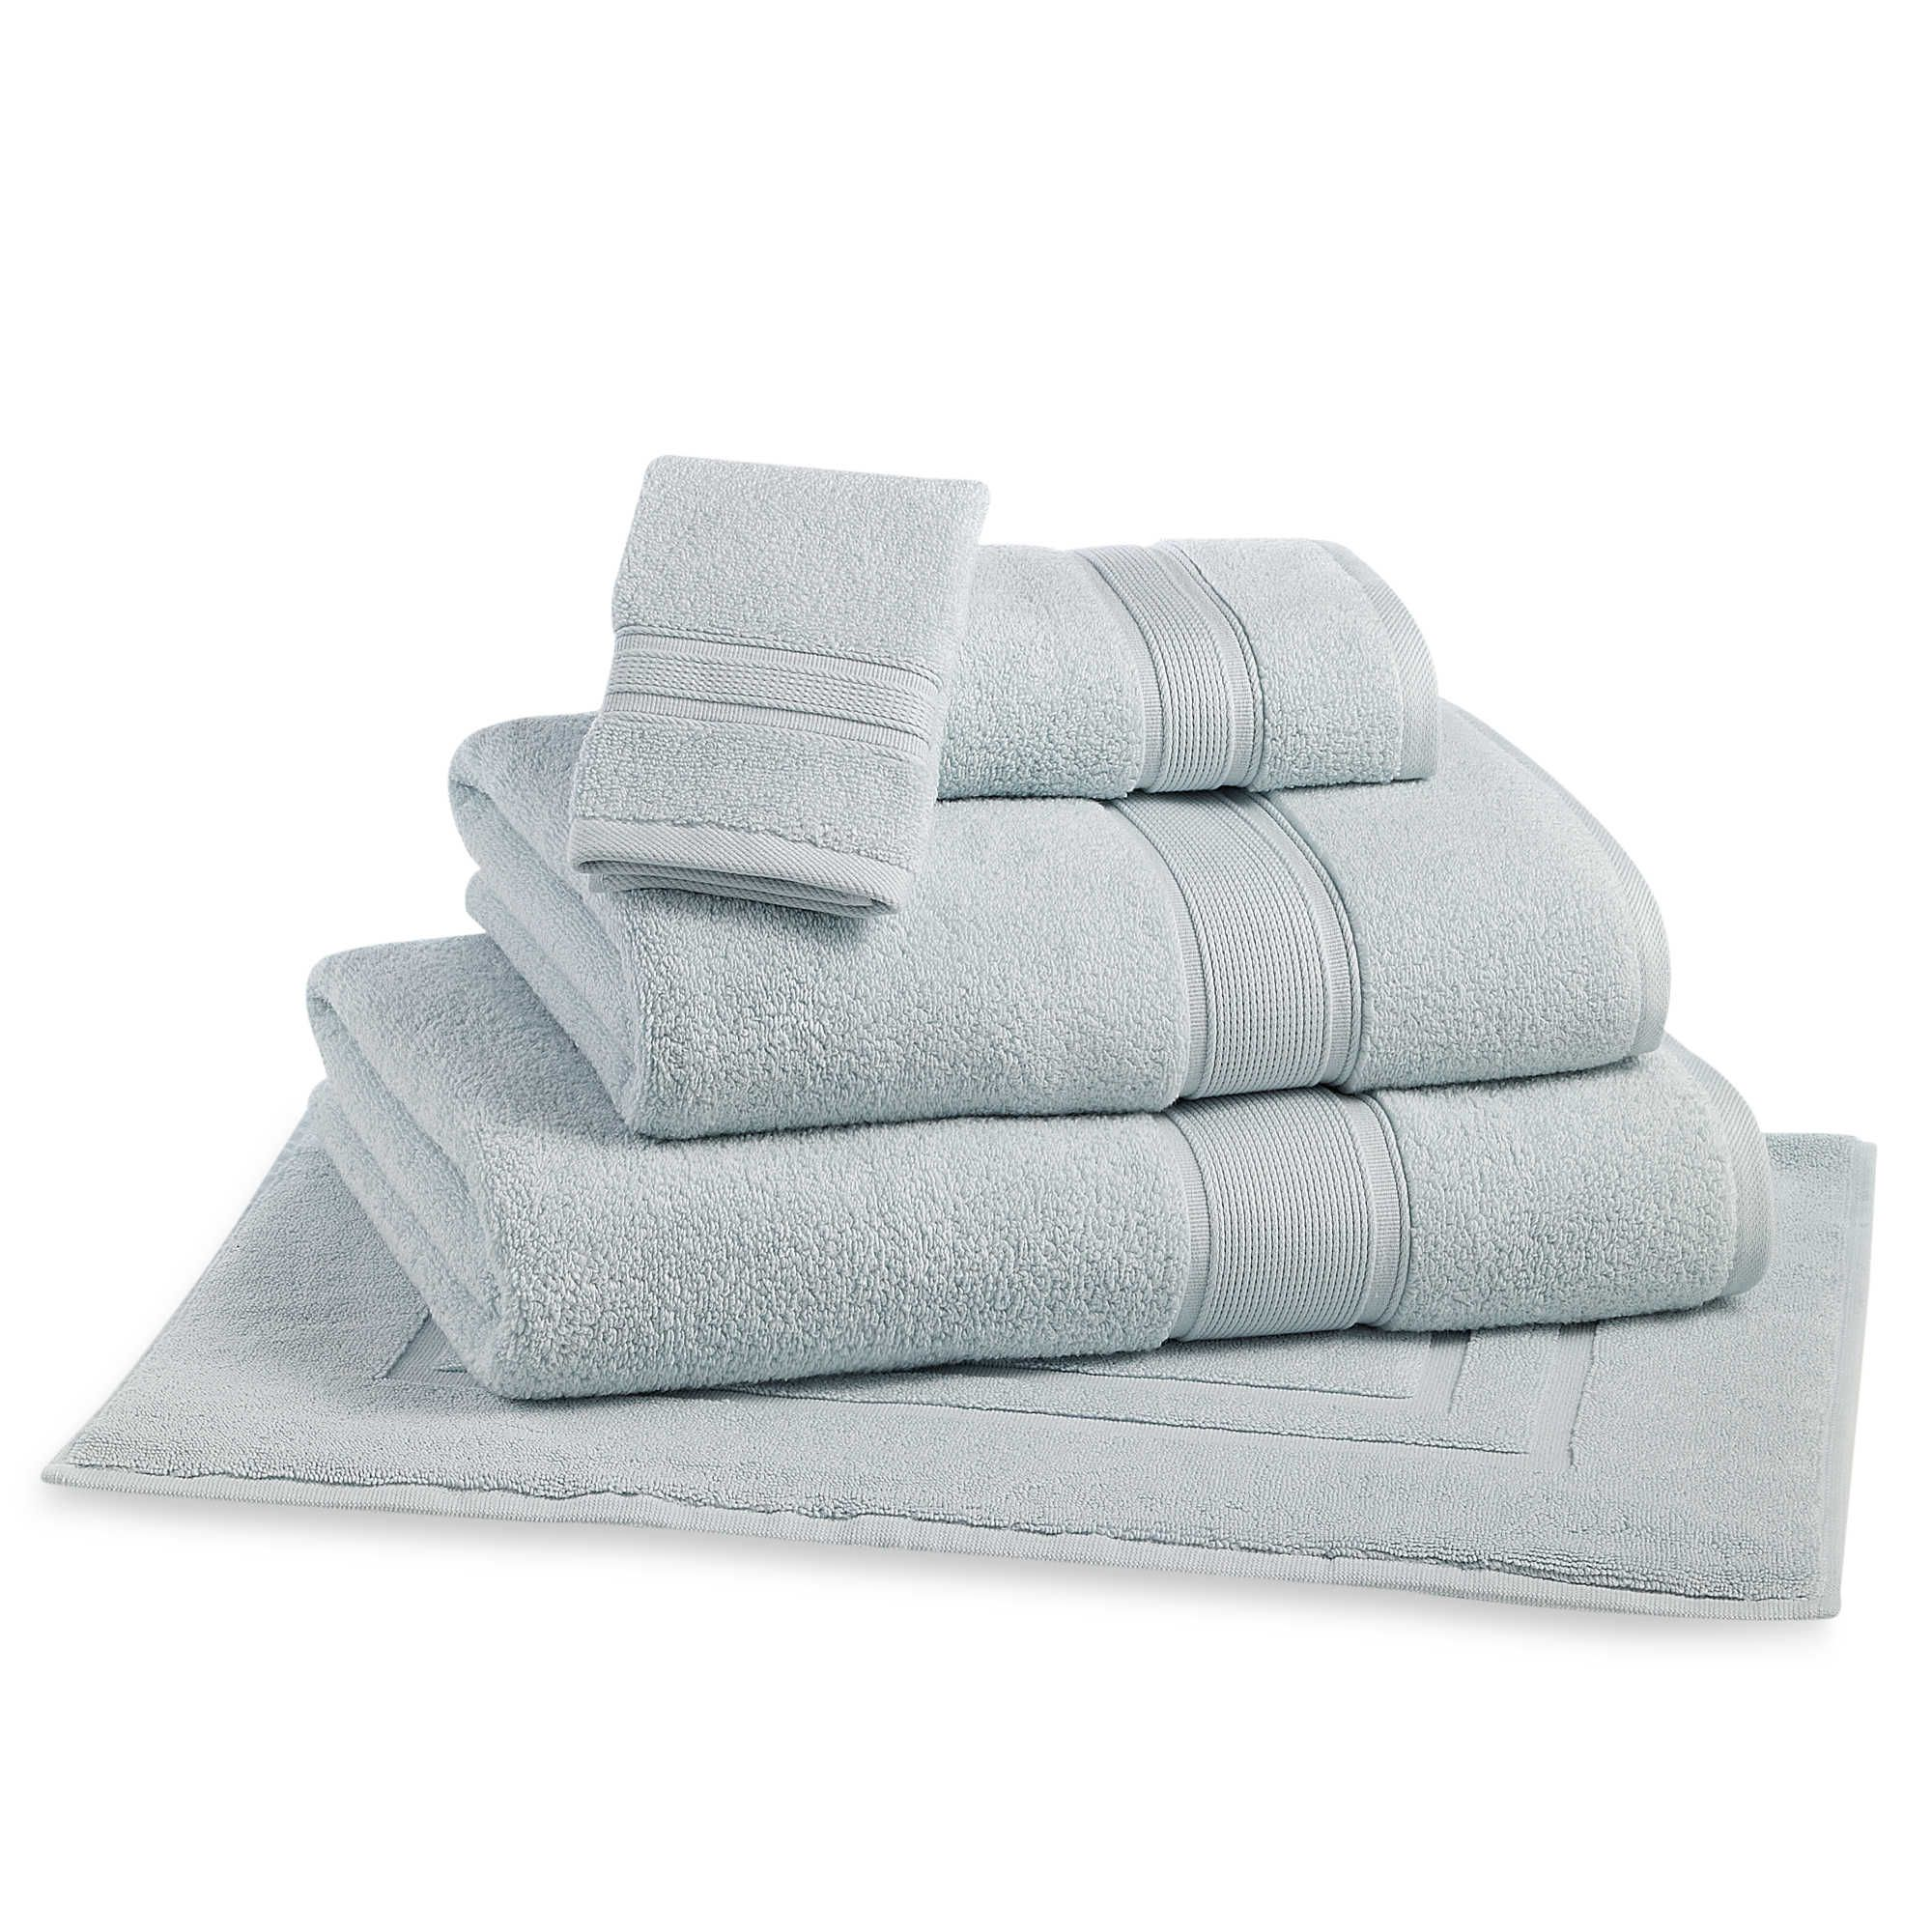 Bed bath and beyond bath towels - Kenneth Cole Reaction Home Bath Towel Master Sea Glass Bed Bath Beyondhome